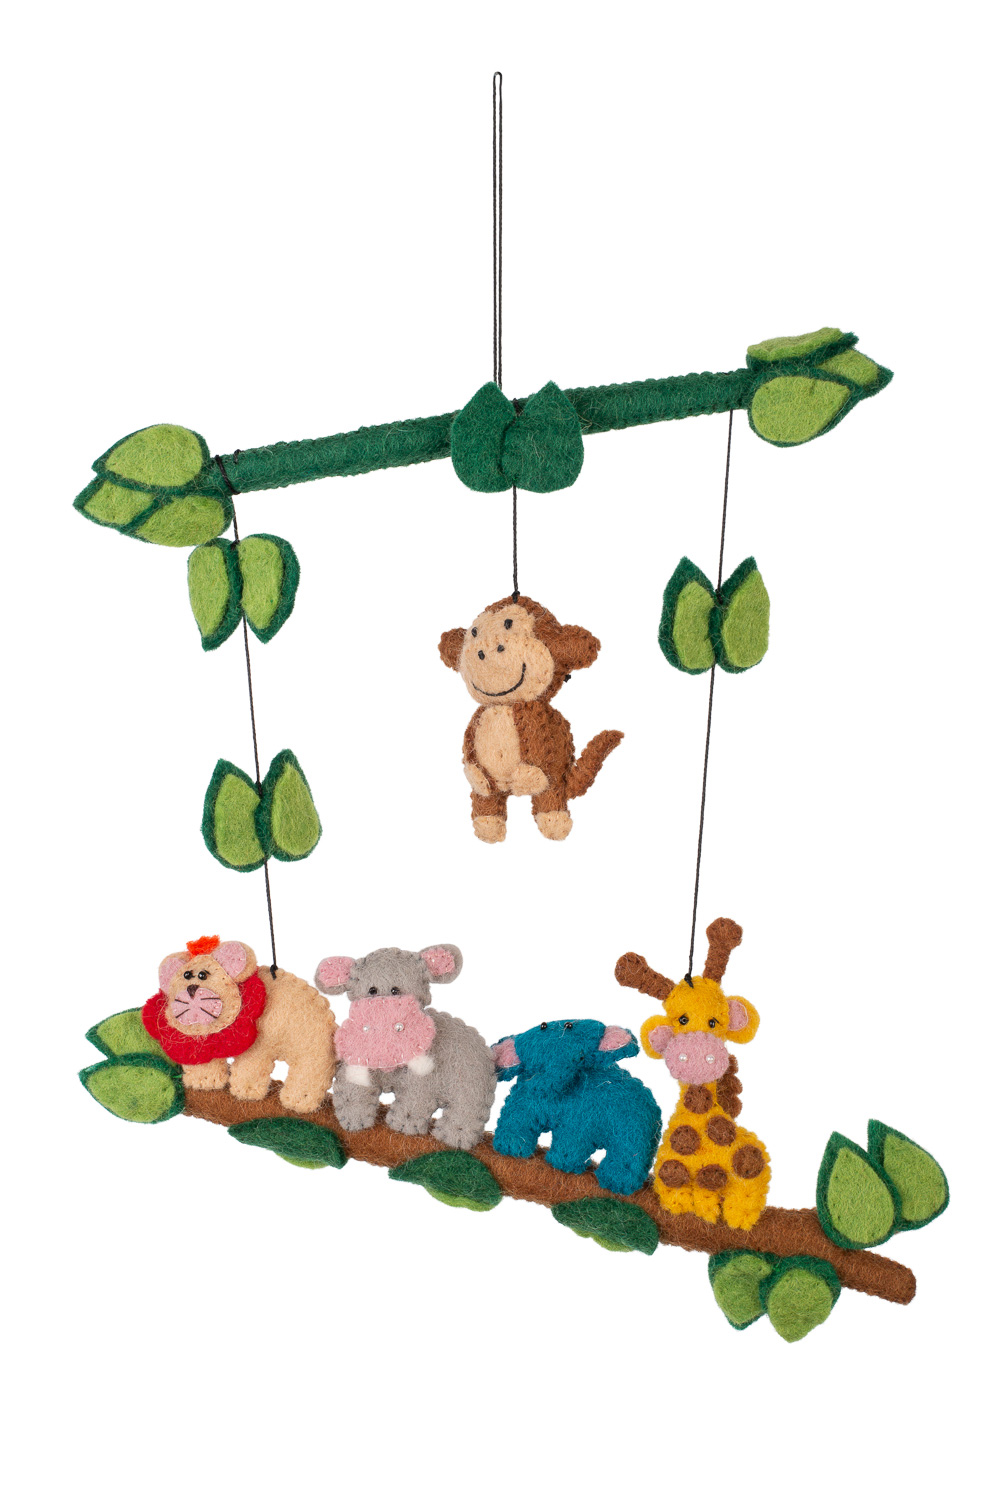 Handmade felted Jungle animals wall hanging